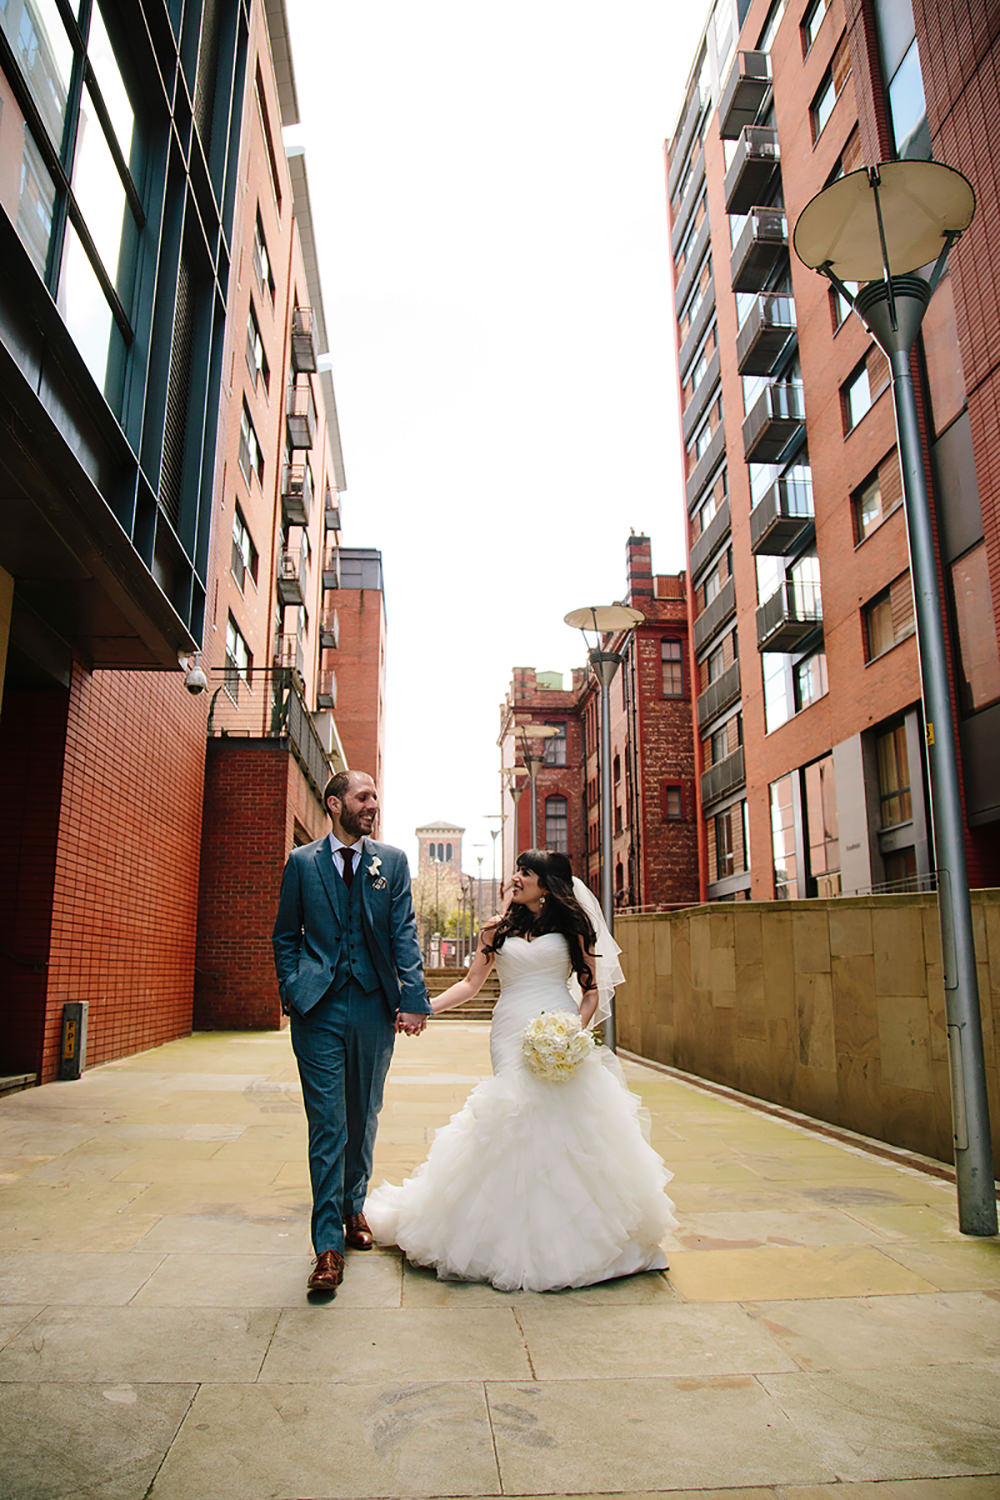 natural wedding photography as the couple walk down the alley